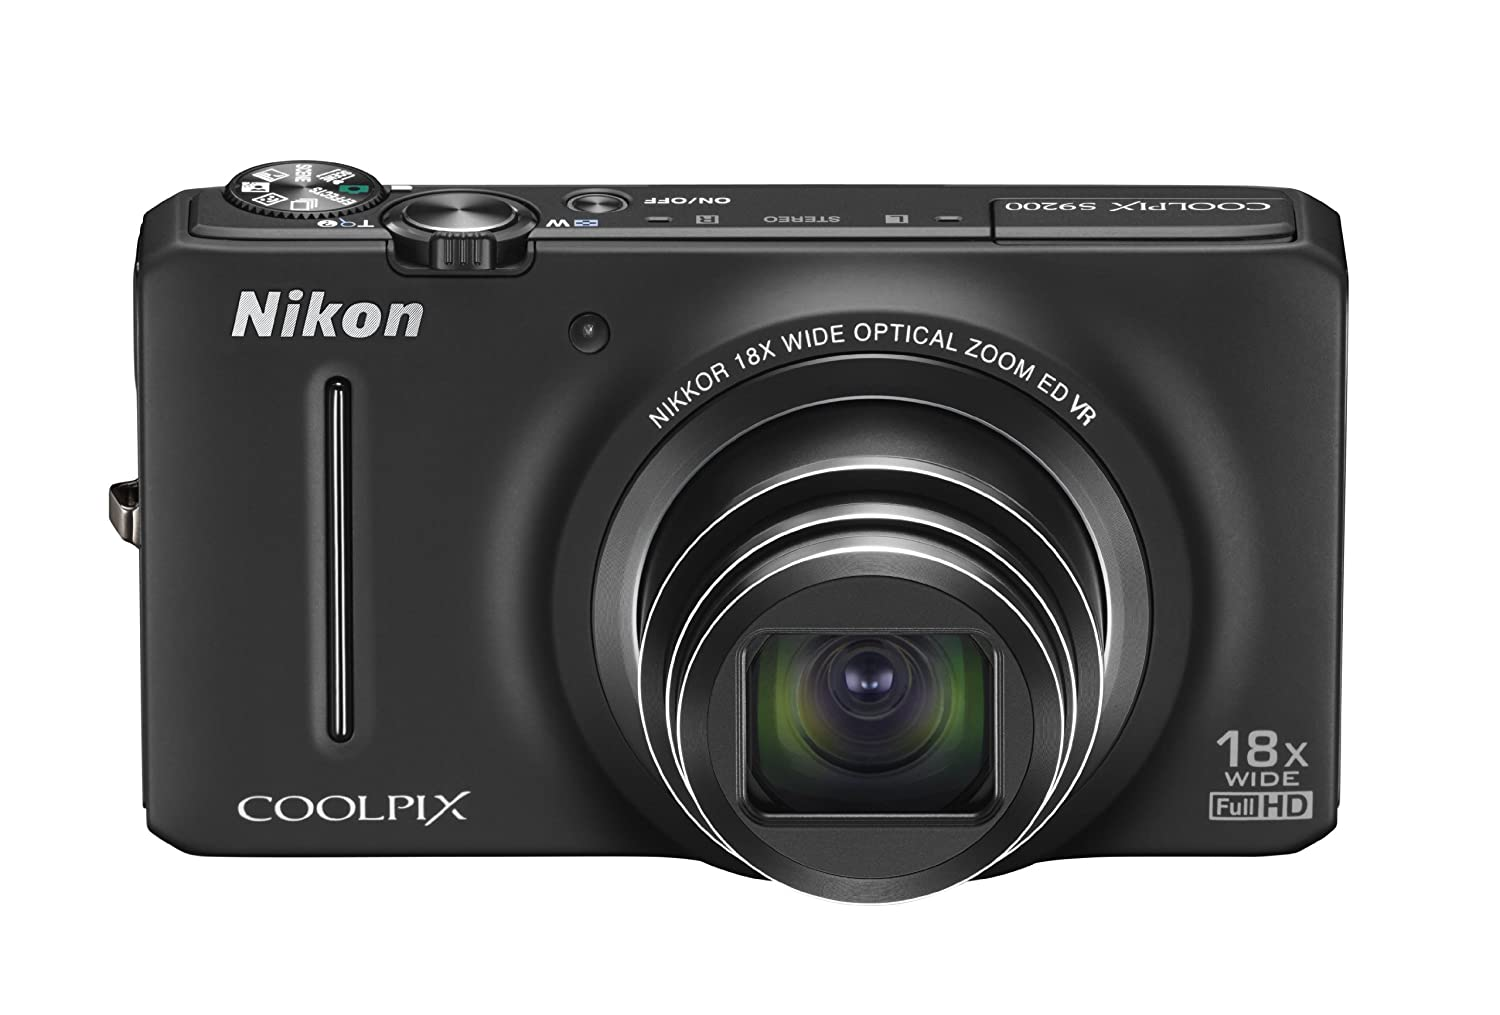 Nikon COOLPIX S9200 16 MP CMOS Digital Camera with 18x Zoom NIKKOR ED Glass Lens and Full HD 1080p Video ($123.45)